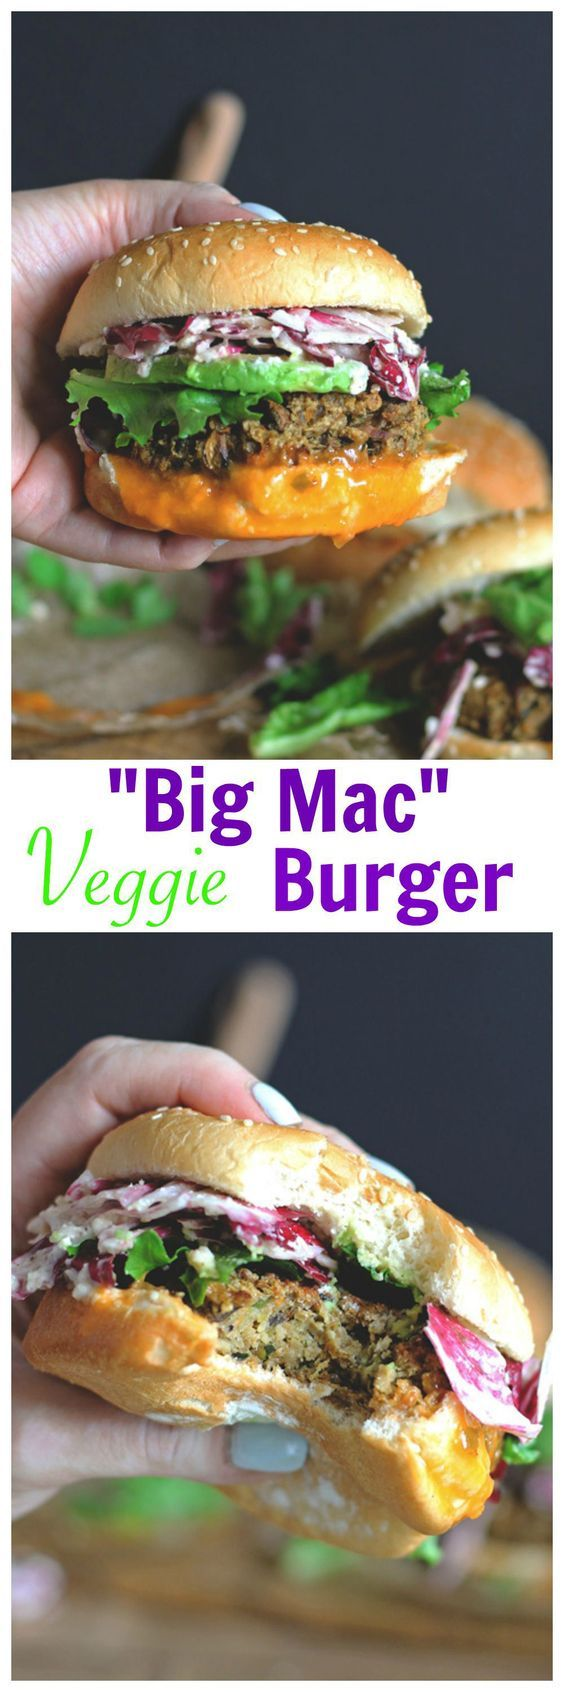 "The Best Veggie ""Big Mac"" Burger with Radicchio Slaw"